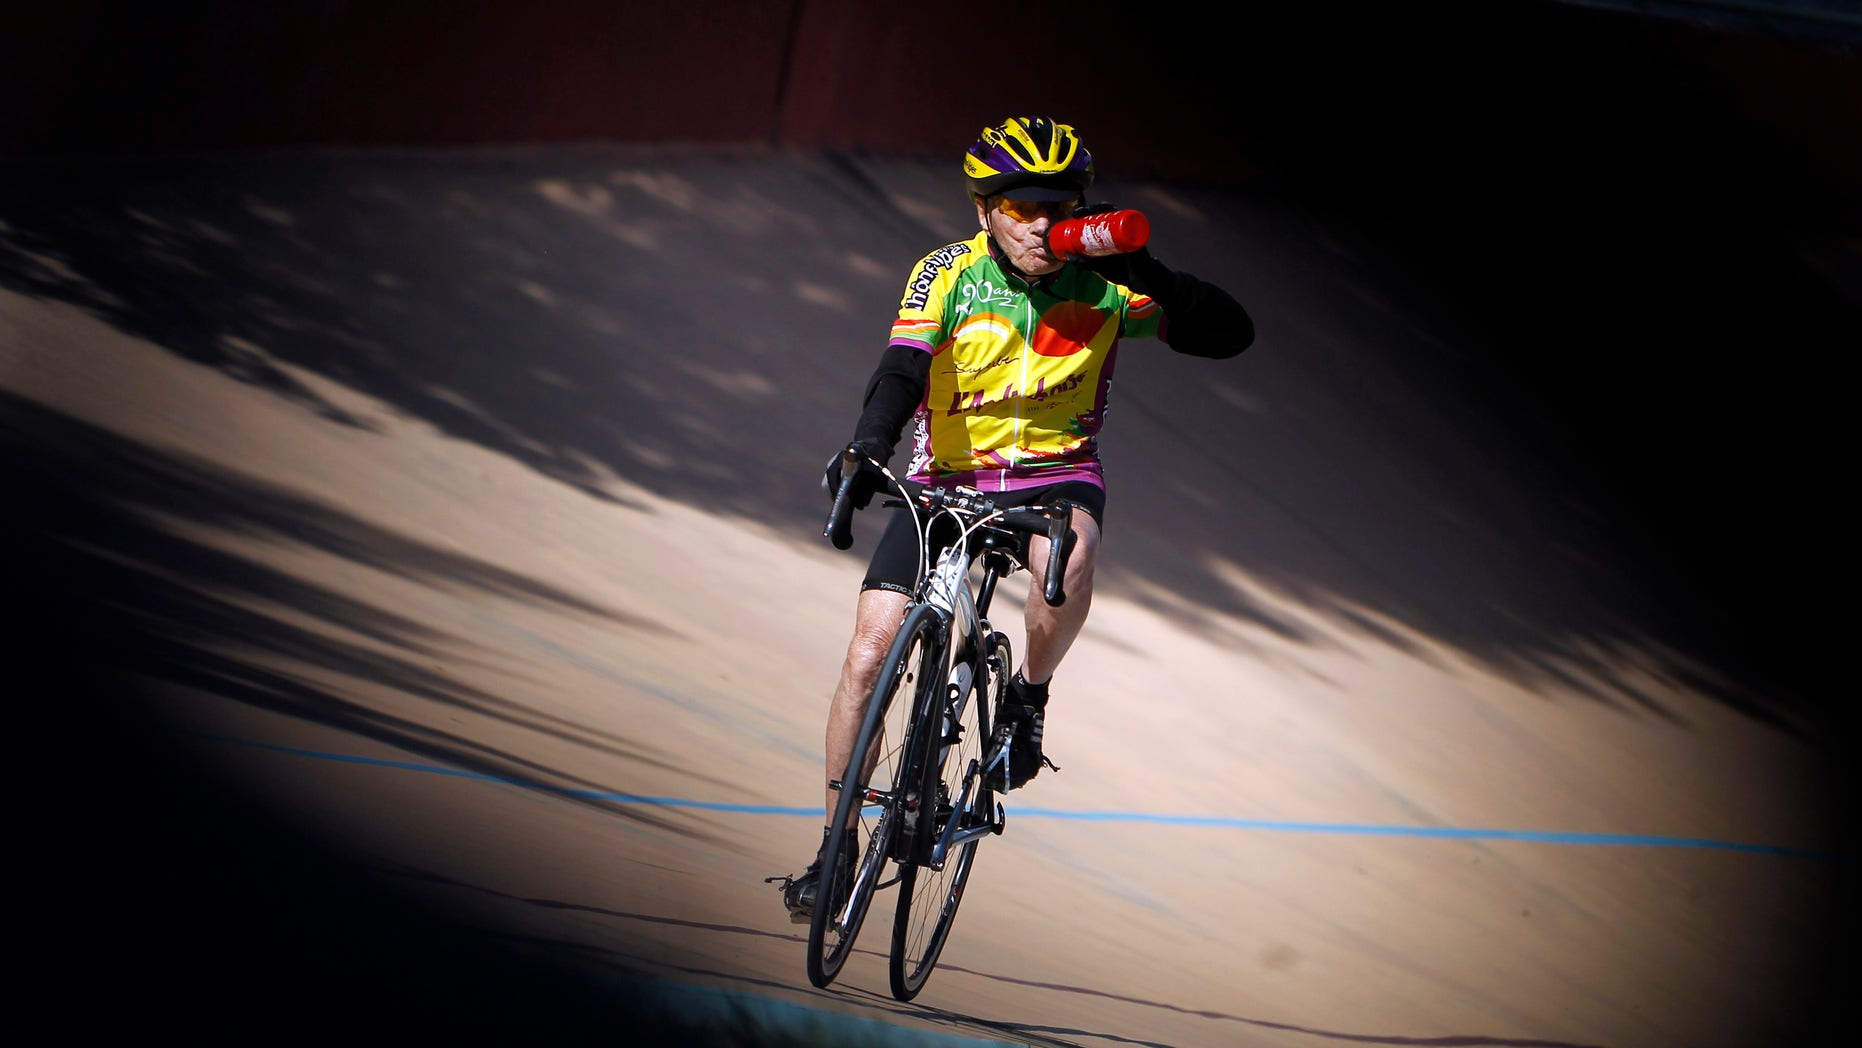 Sept. 28, 2012 - French centenarian Robert Marchand as he attempts to establish a record for the fastest 100-year-old to cover 100km (62 miles,) at the outdoor  Velodrome track of Lyon, central France.